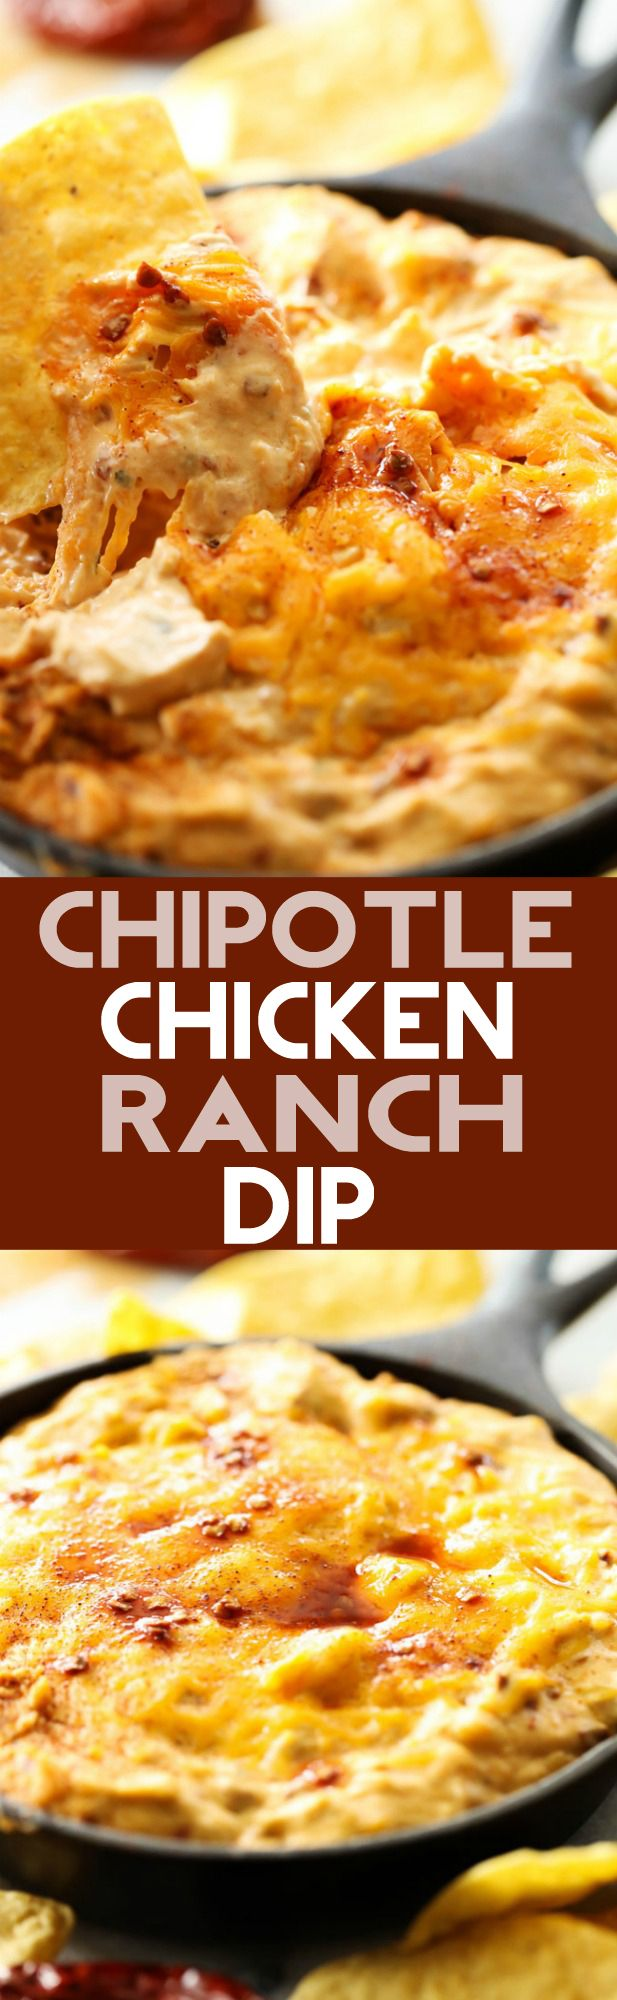 Chipotle Chicken Ranch Dip... A delicious smooth and creamy dip that ...